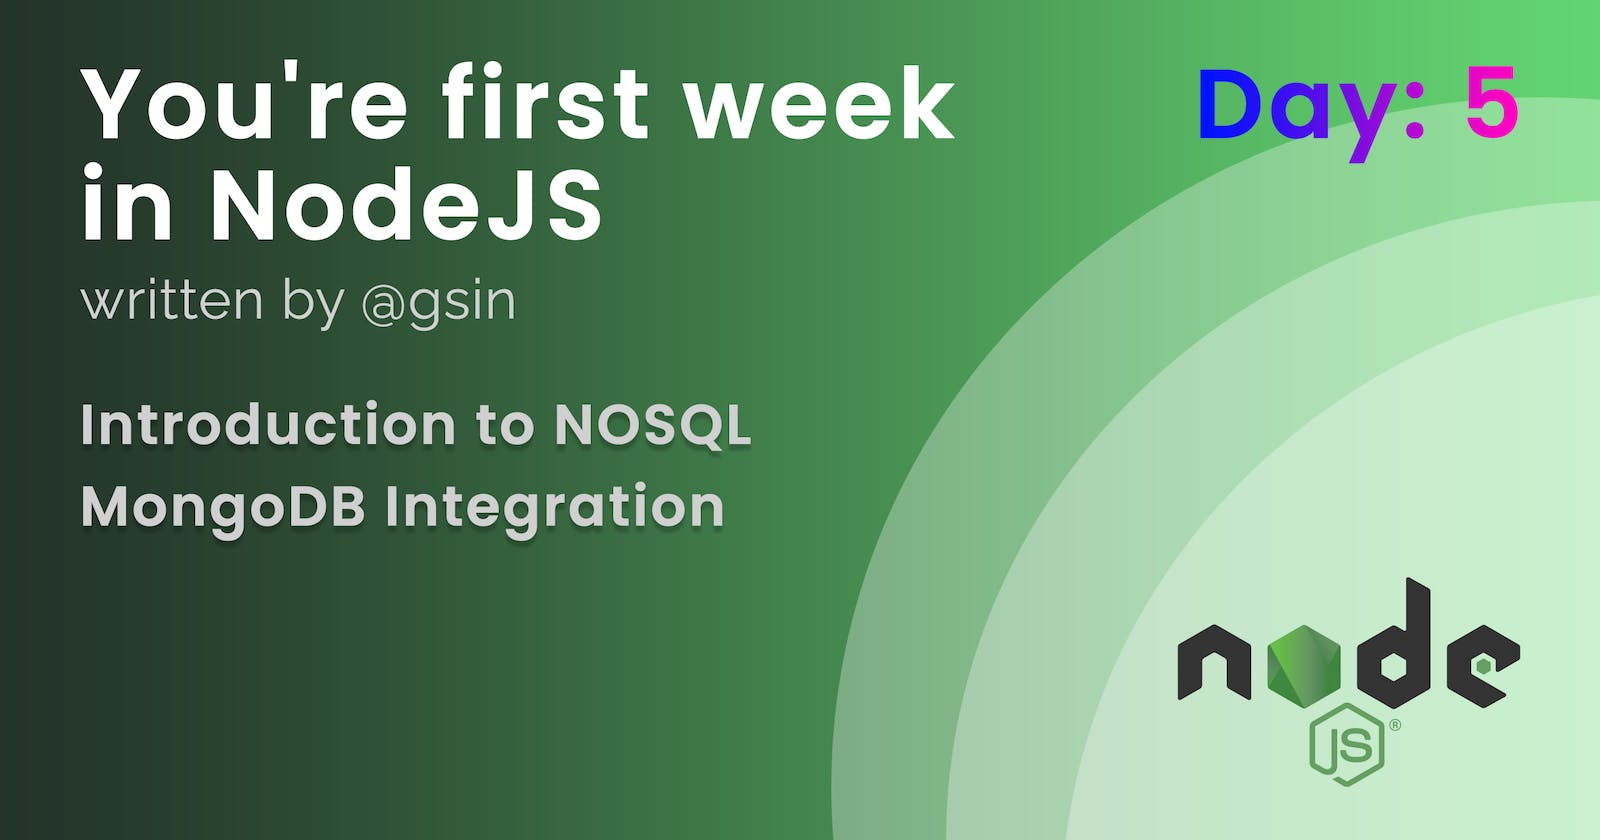 Day 5 - Your first week in NodeJS